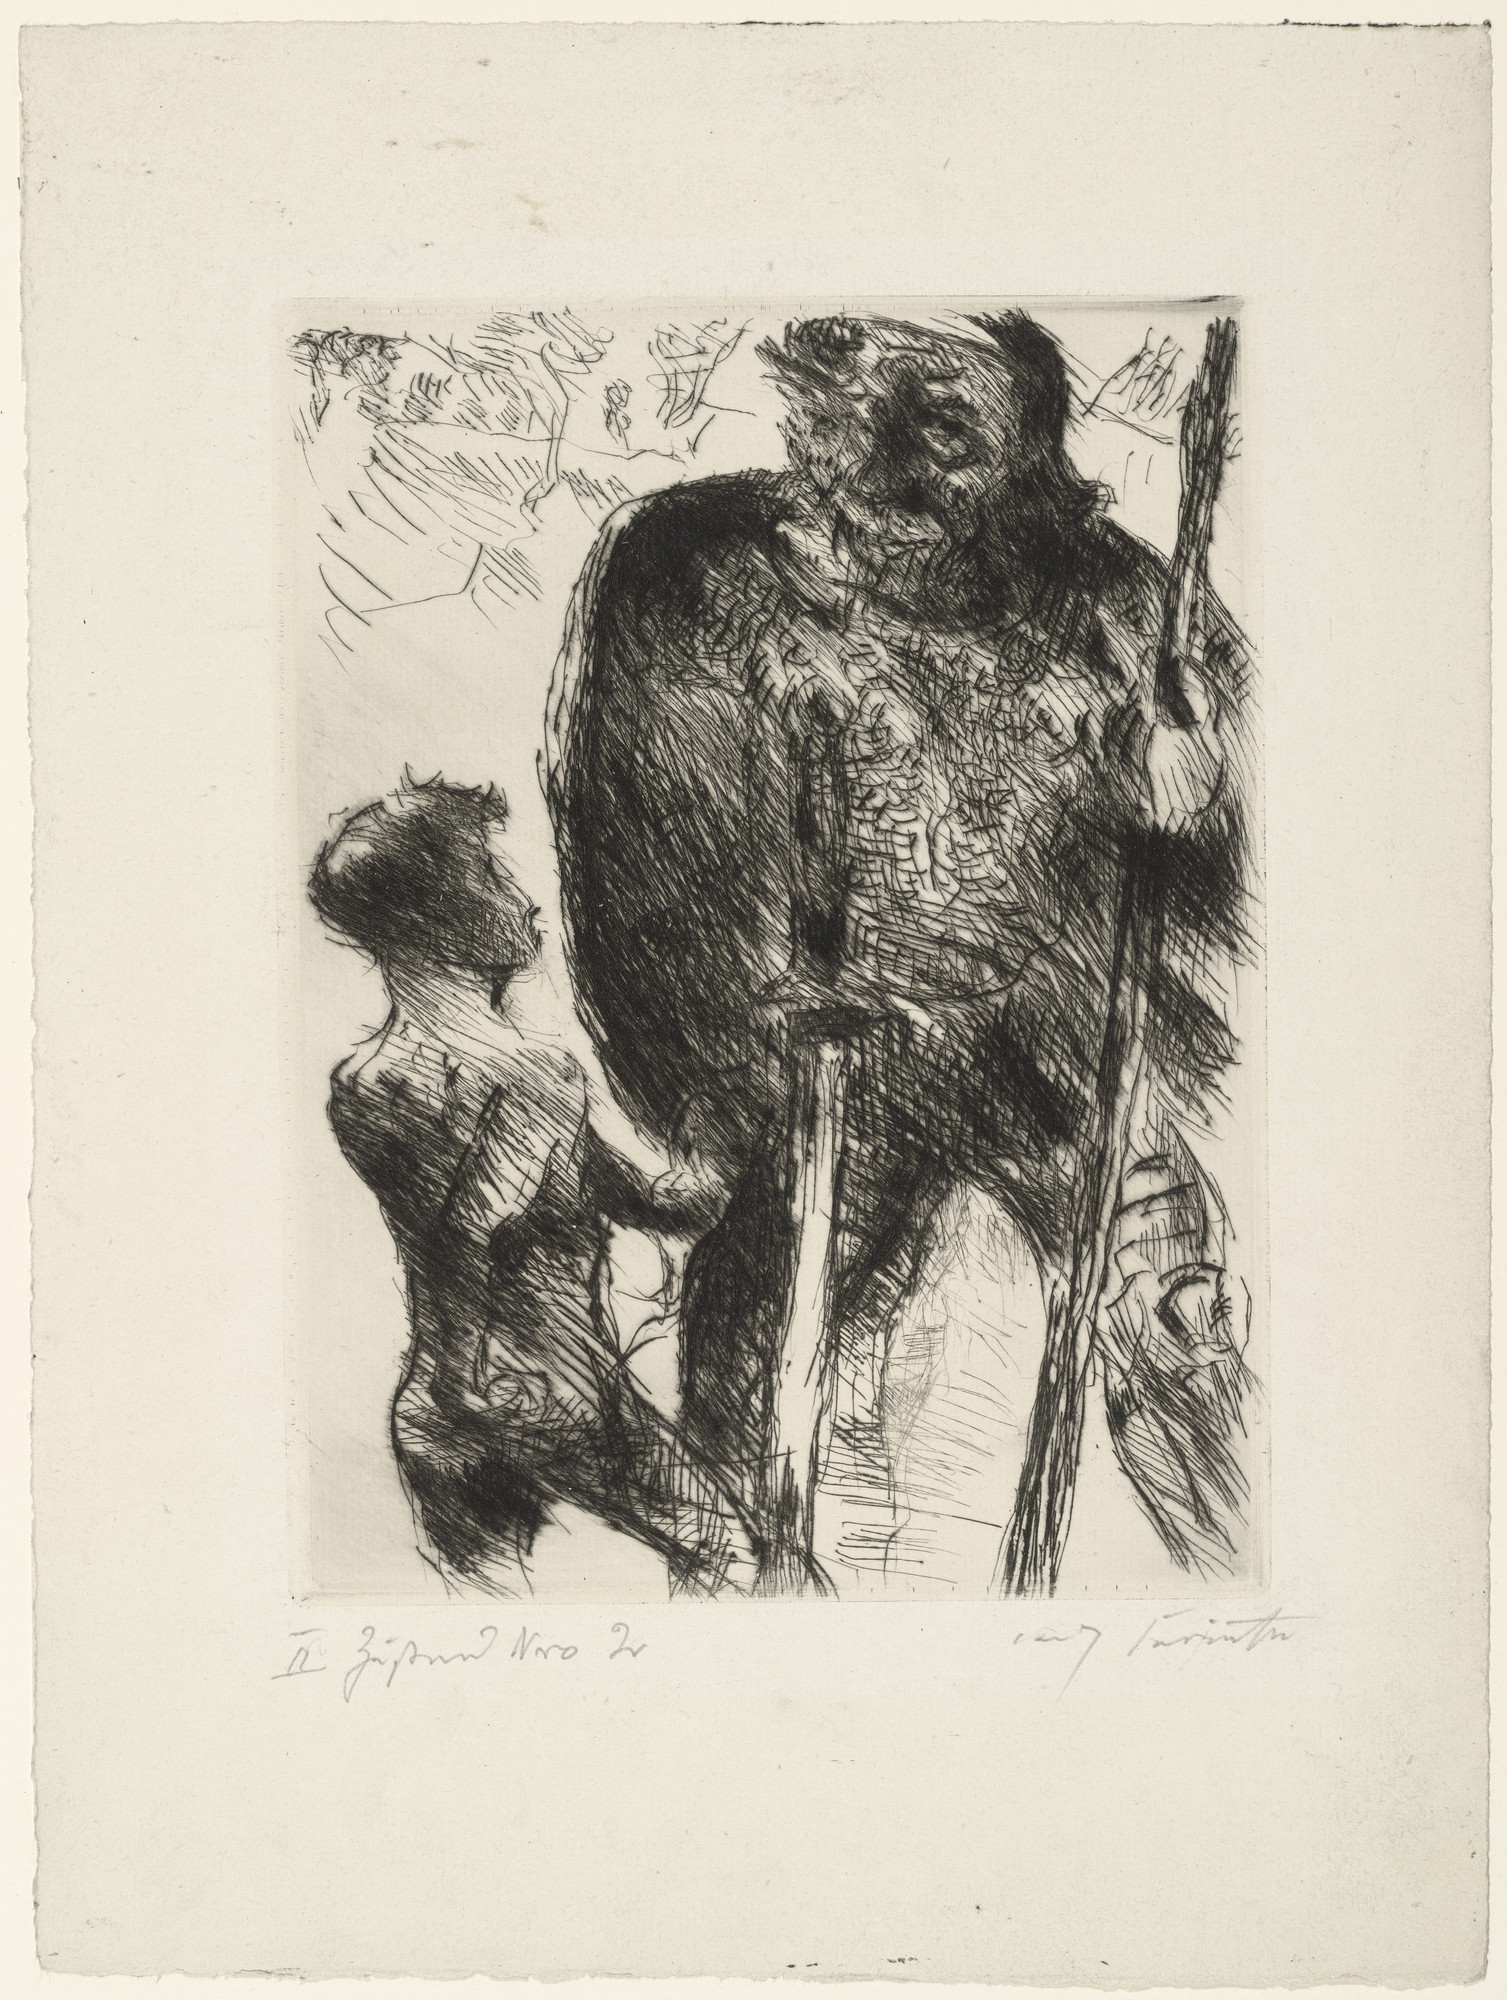 Lovis Corinth. David and Goliath (David und Goliath) for the illustrated book Saul and David. The Two Books Samuel (Saul und David. Die beiden Bücher Samuelis). (1923)